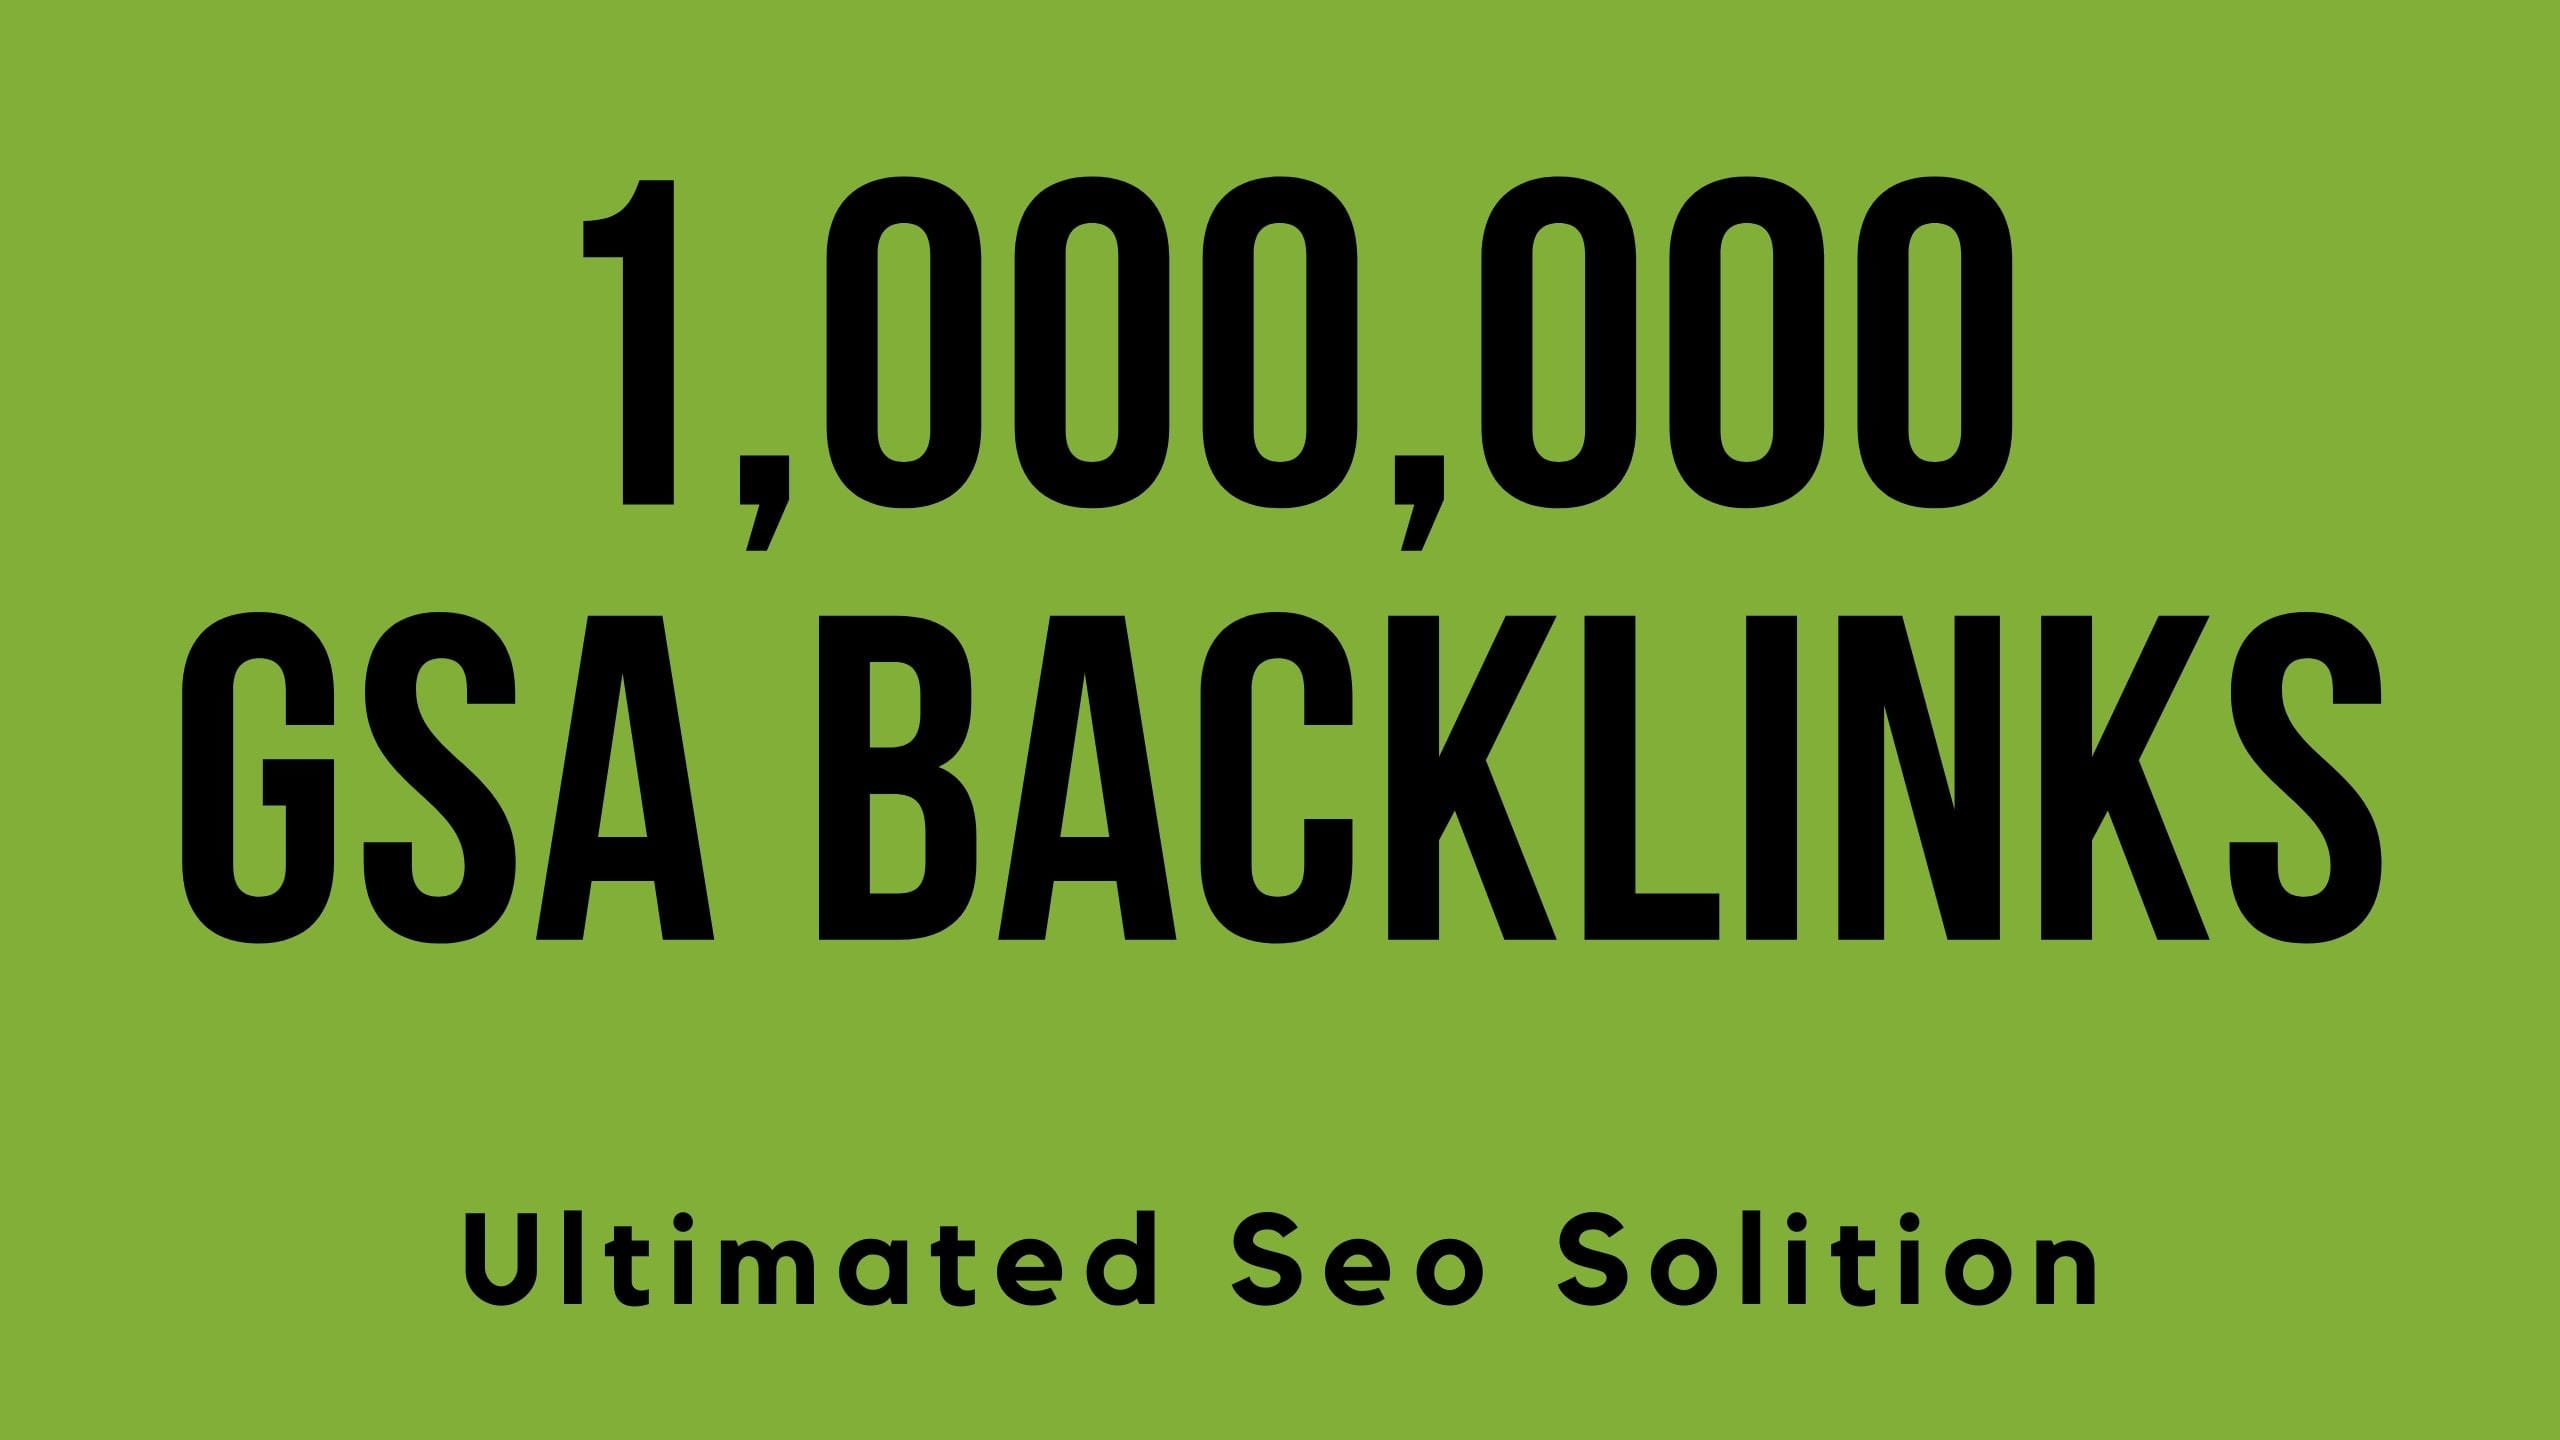 Build 1000000 GSA SER live solid backlinks high quality SEO backlinks